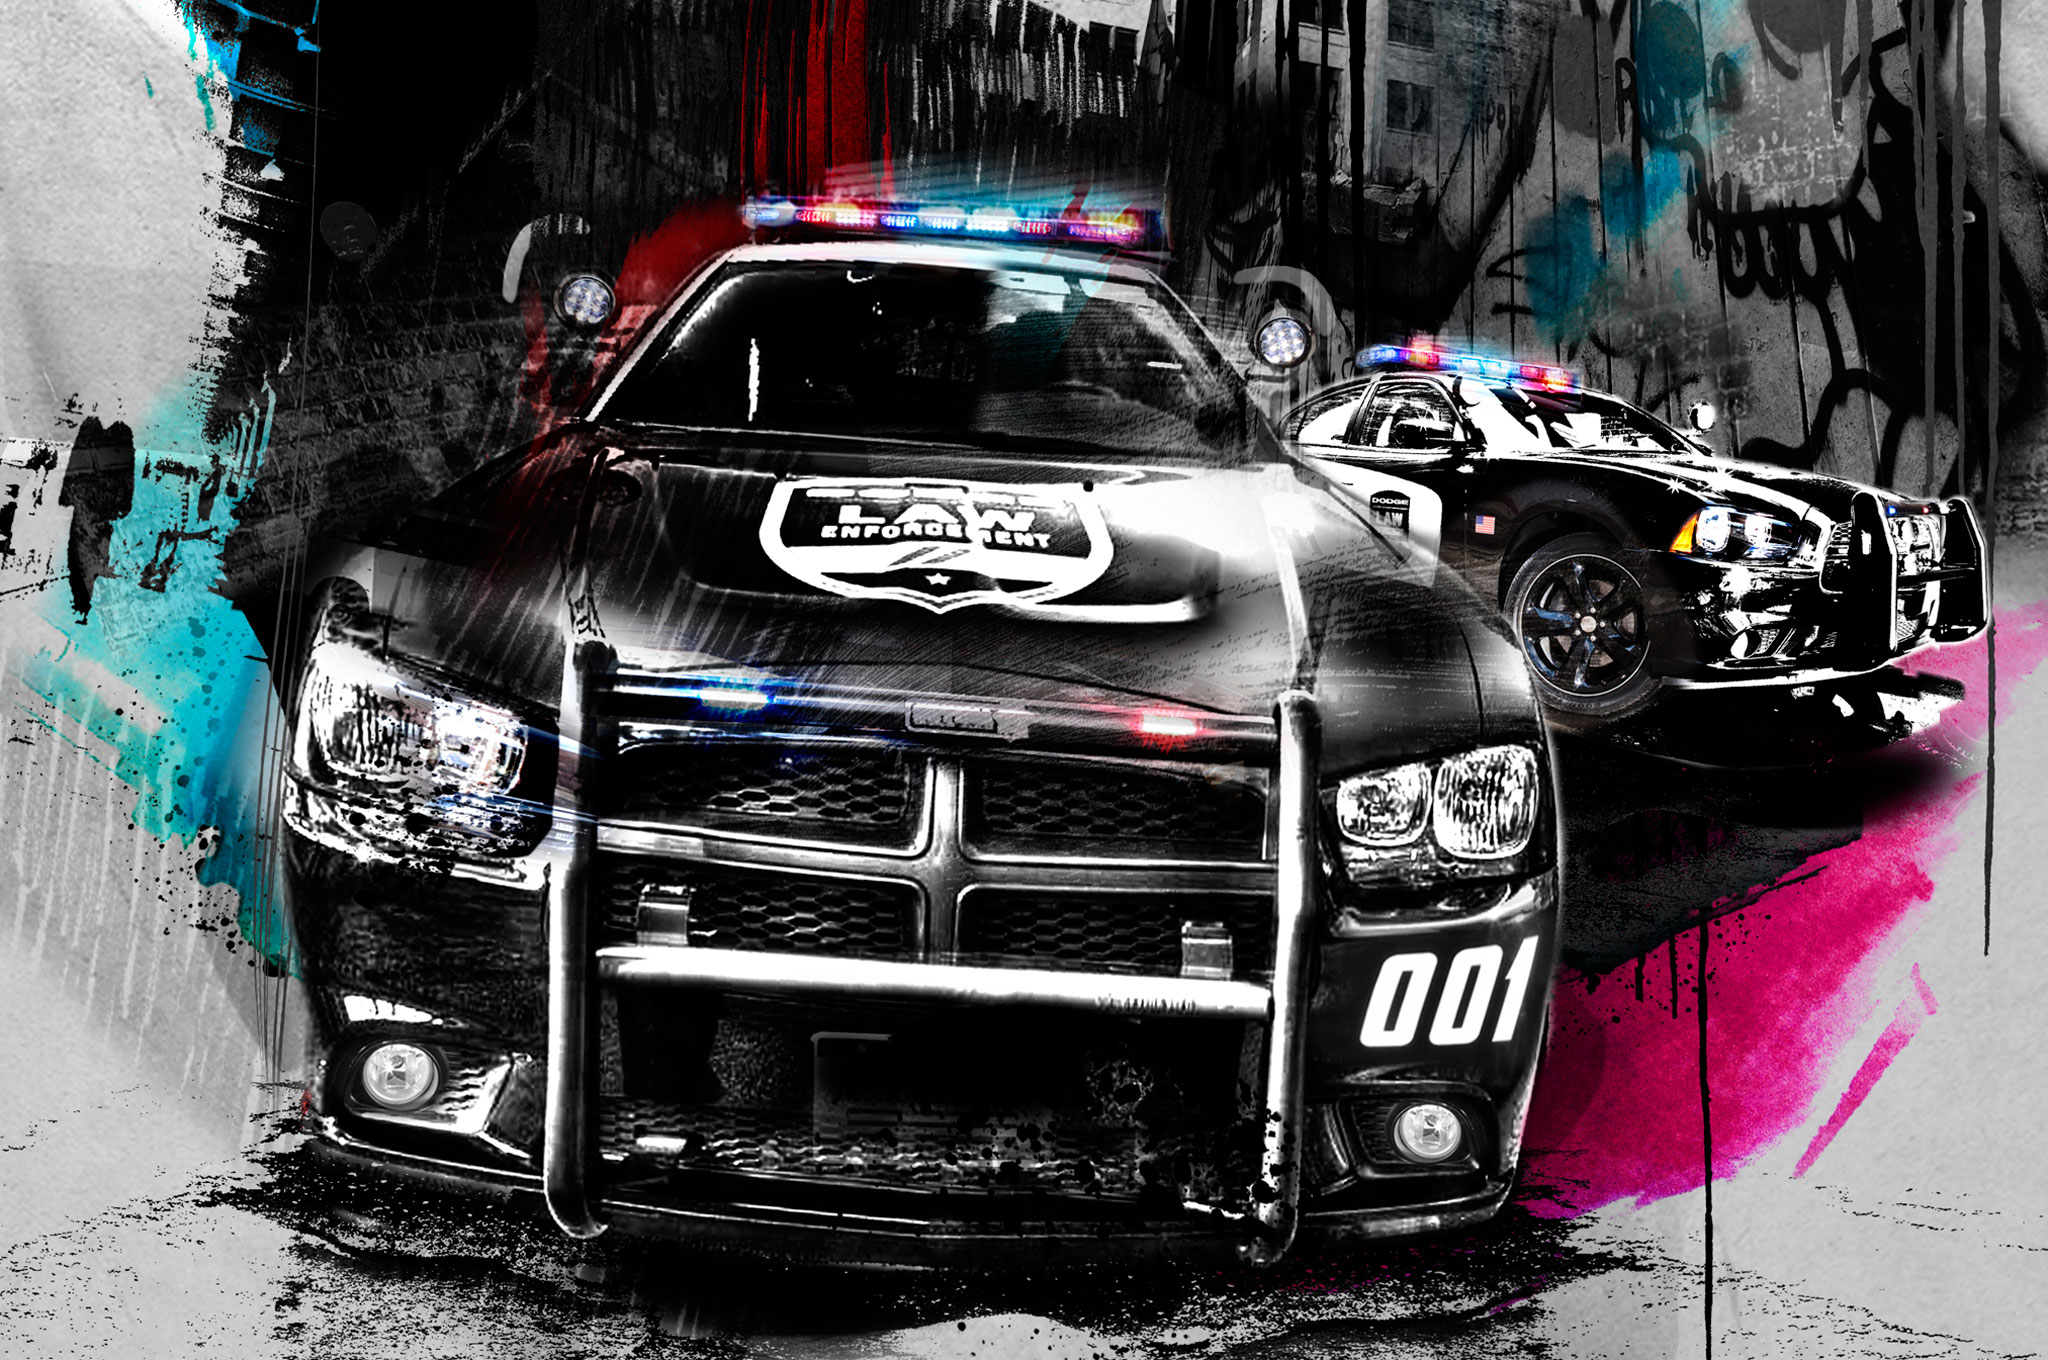 Police Car Illustration Cropped